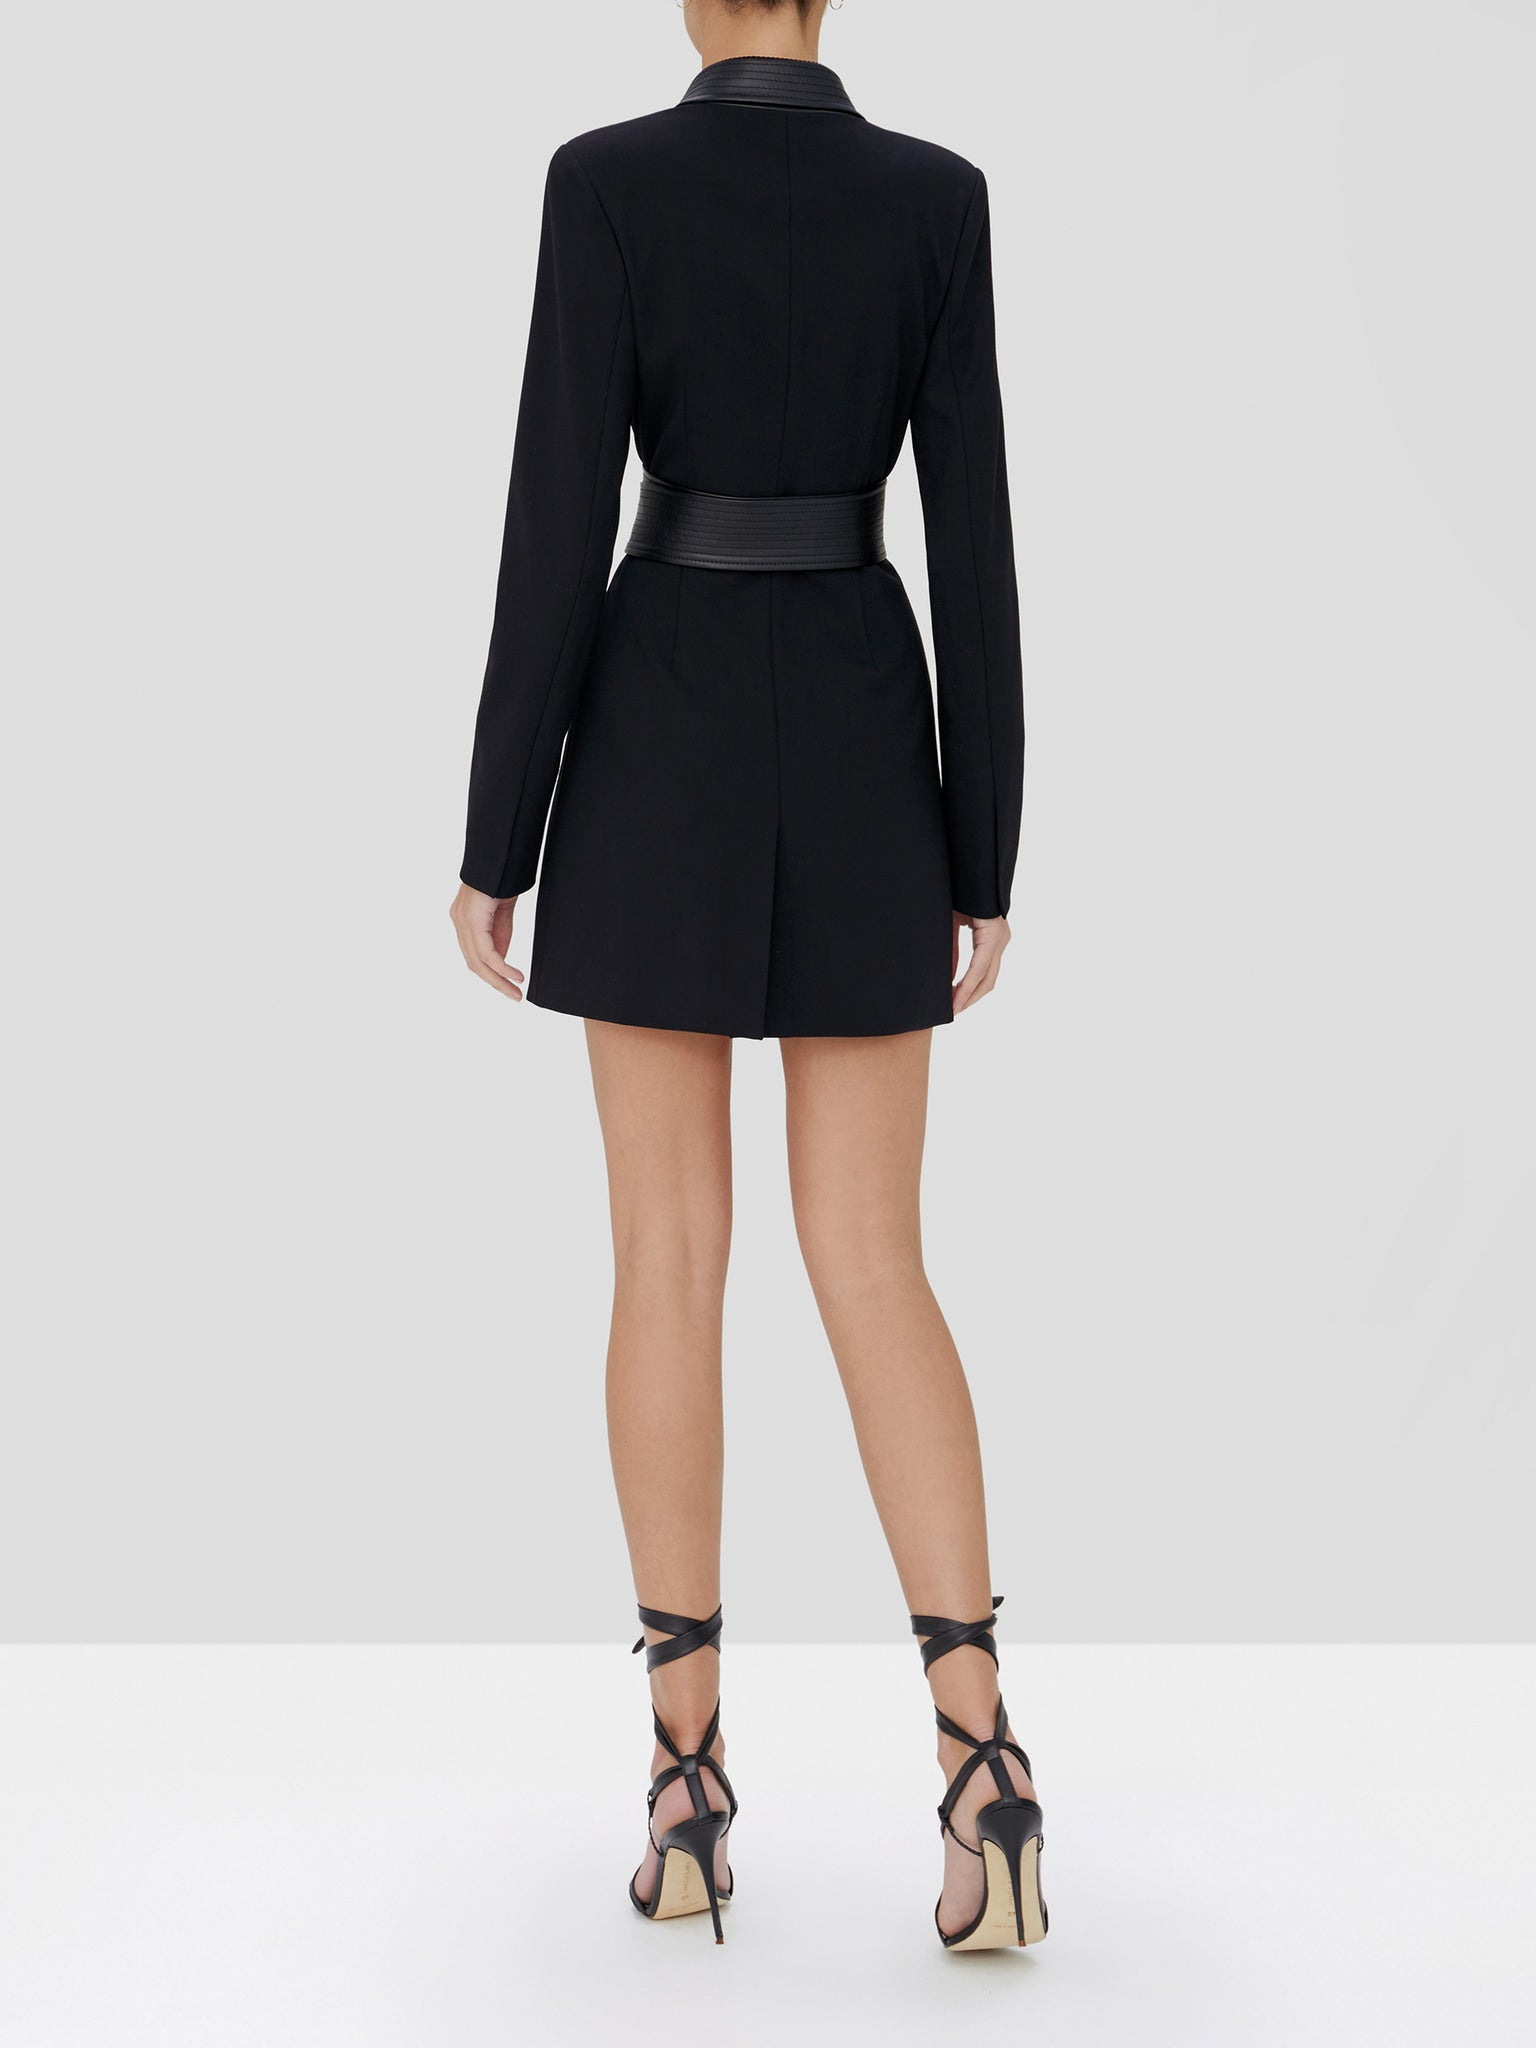 Rachel blazer dress in black - Rear View